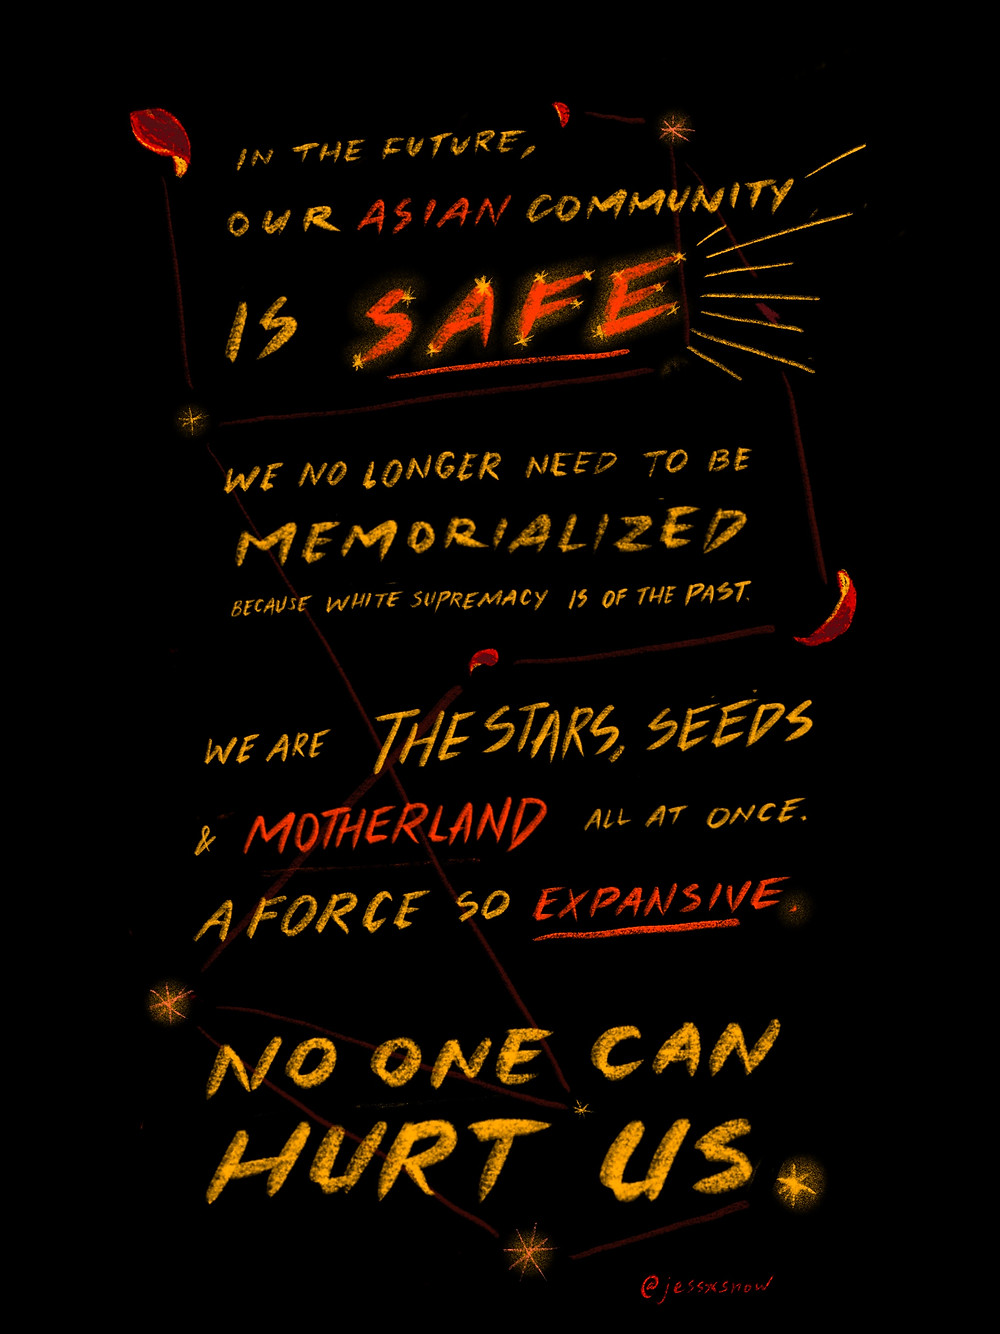 Yellow and Orange letters on black background that states: In the future, our Asian community is safe, we no longer need to be memorialized because white supremacy is of the past. We are the stars, seeds, and motherland all at once. A force so expansive, no one can hurt us.